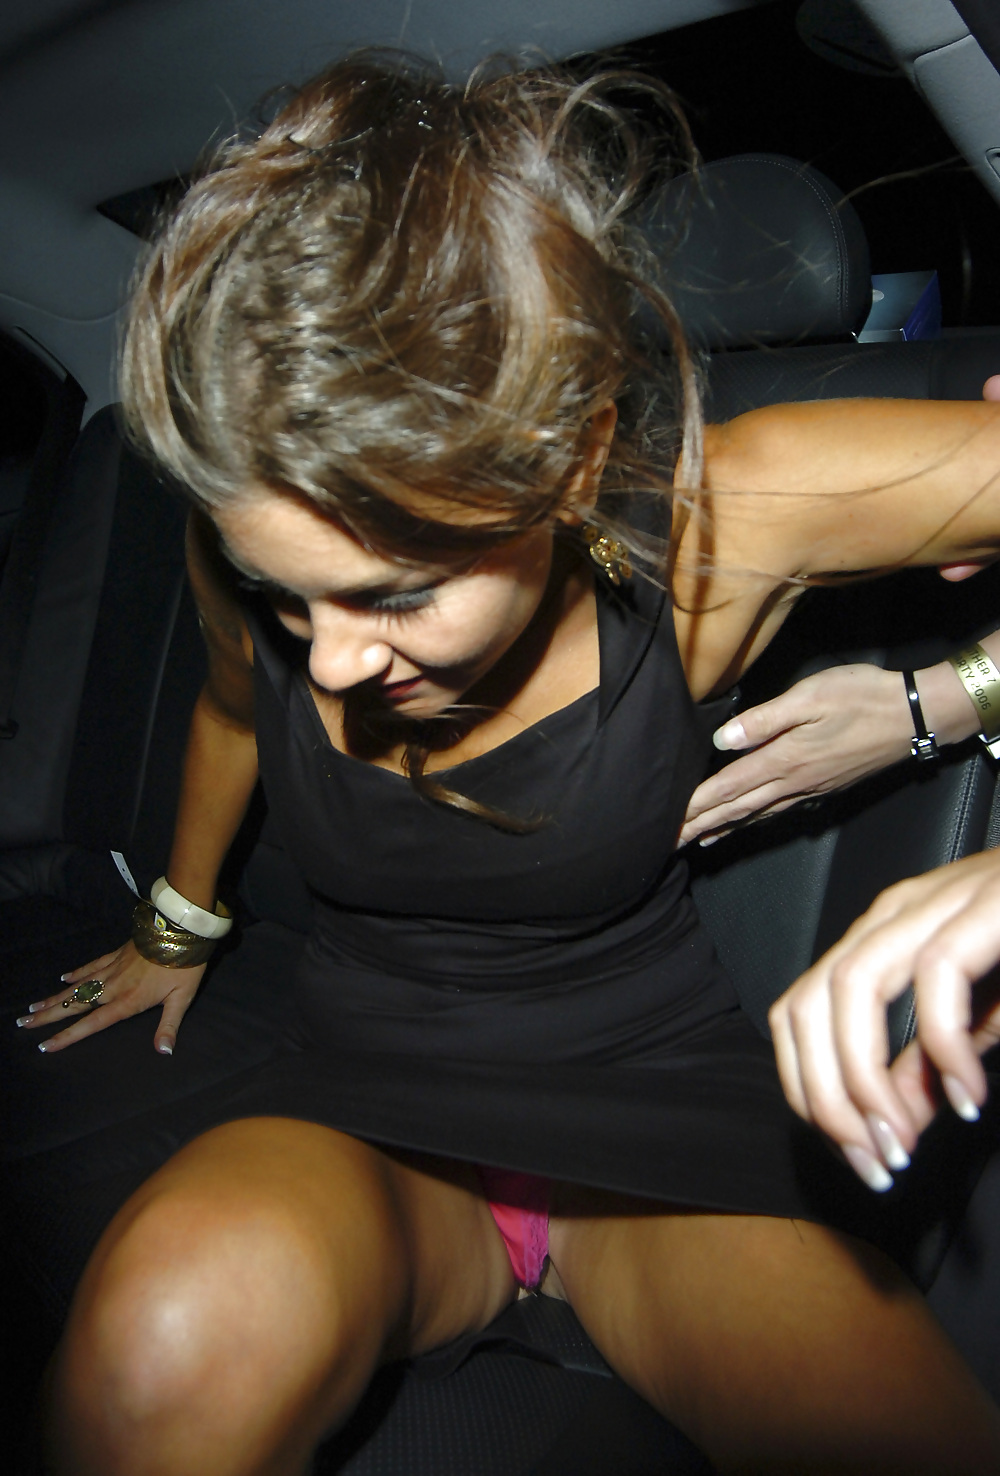 Star up skirt pussy, hot girl at birthday party